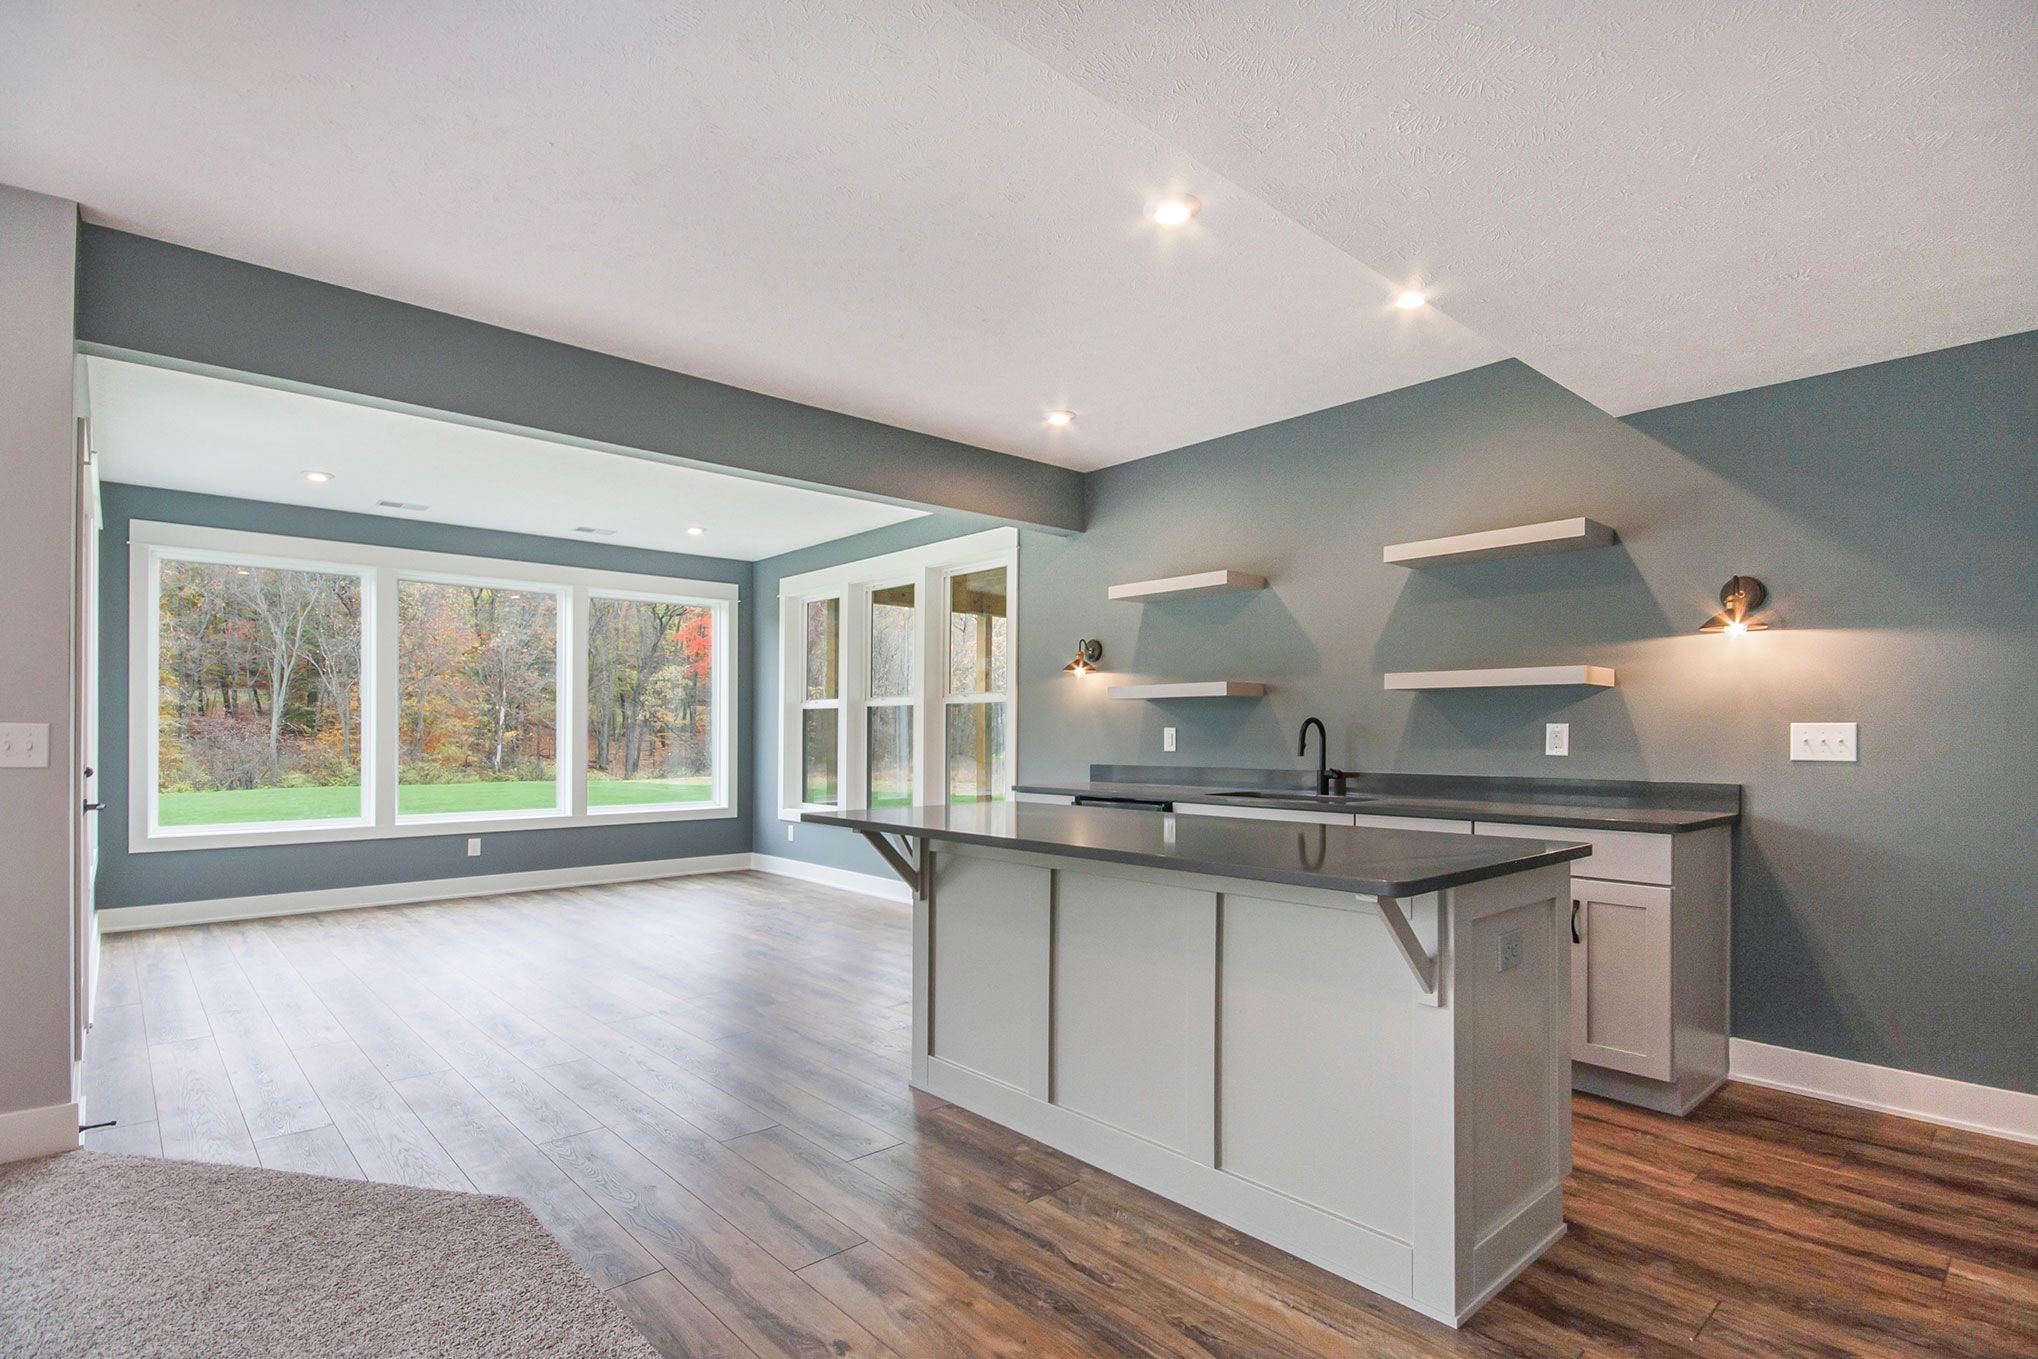 Kitchen featured in The Newport By Eastbrook Homes Inc. in Grand Rapids, MI